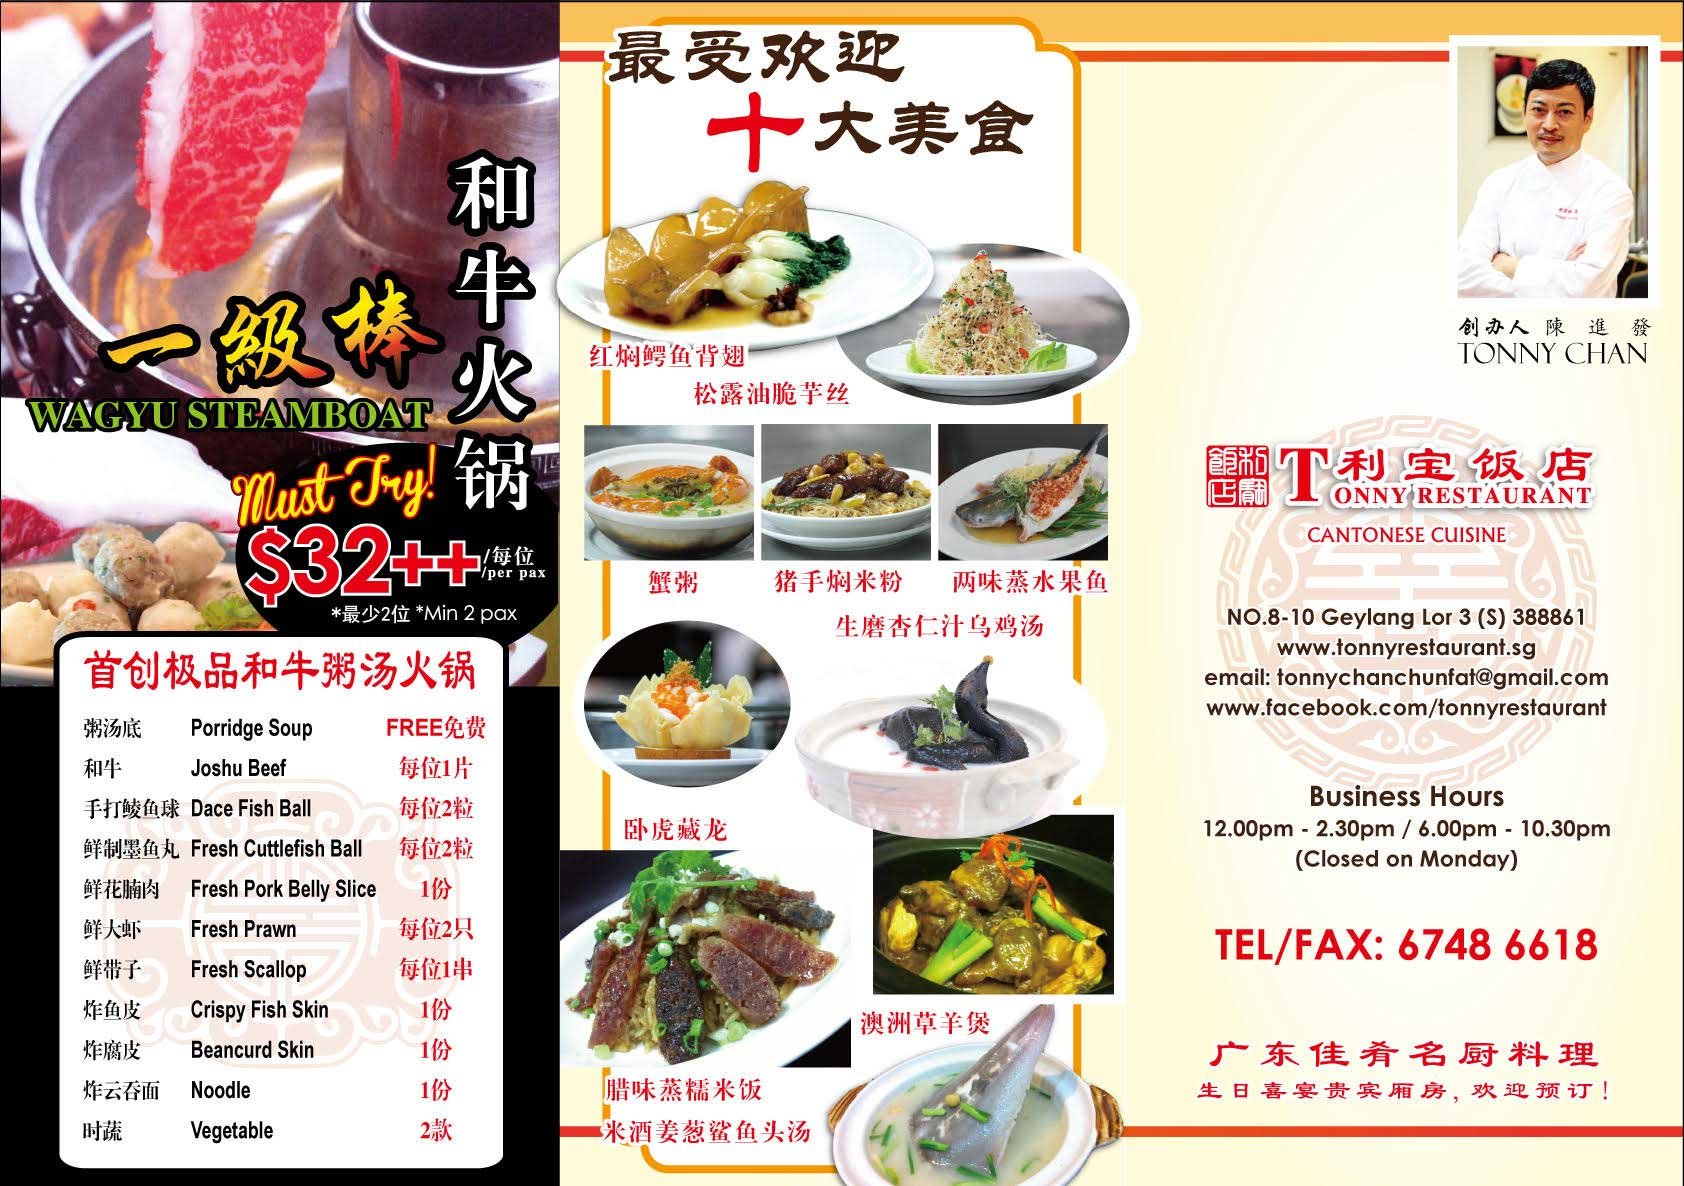 Wagyu Steamboat and 10 Most Popular Dishes at Tonny Restaurant